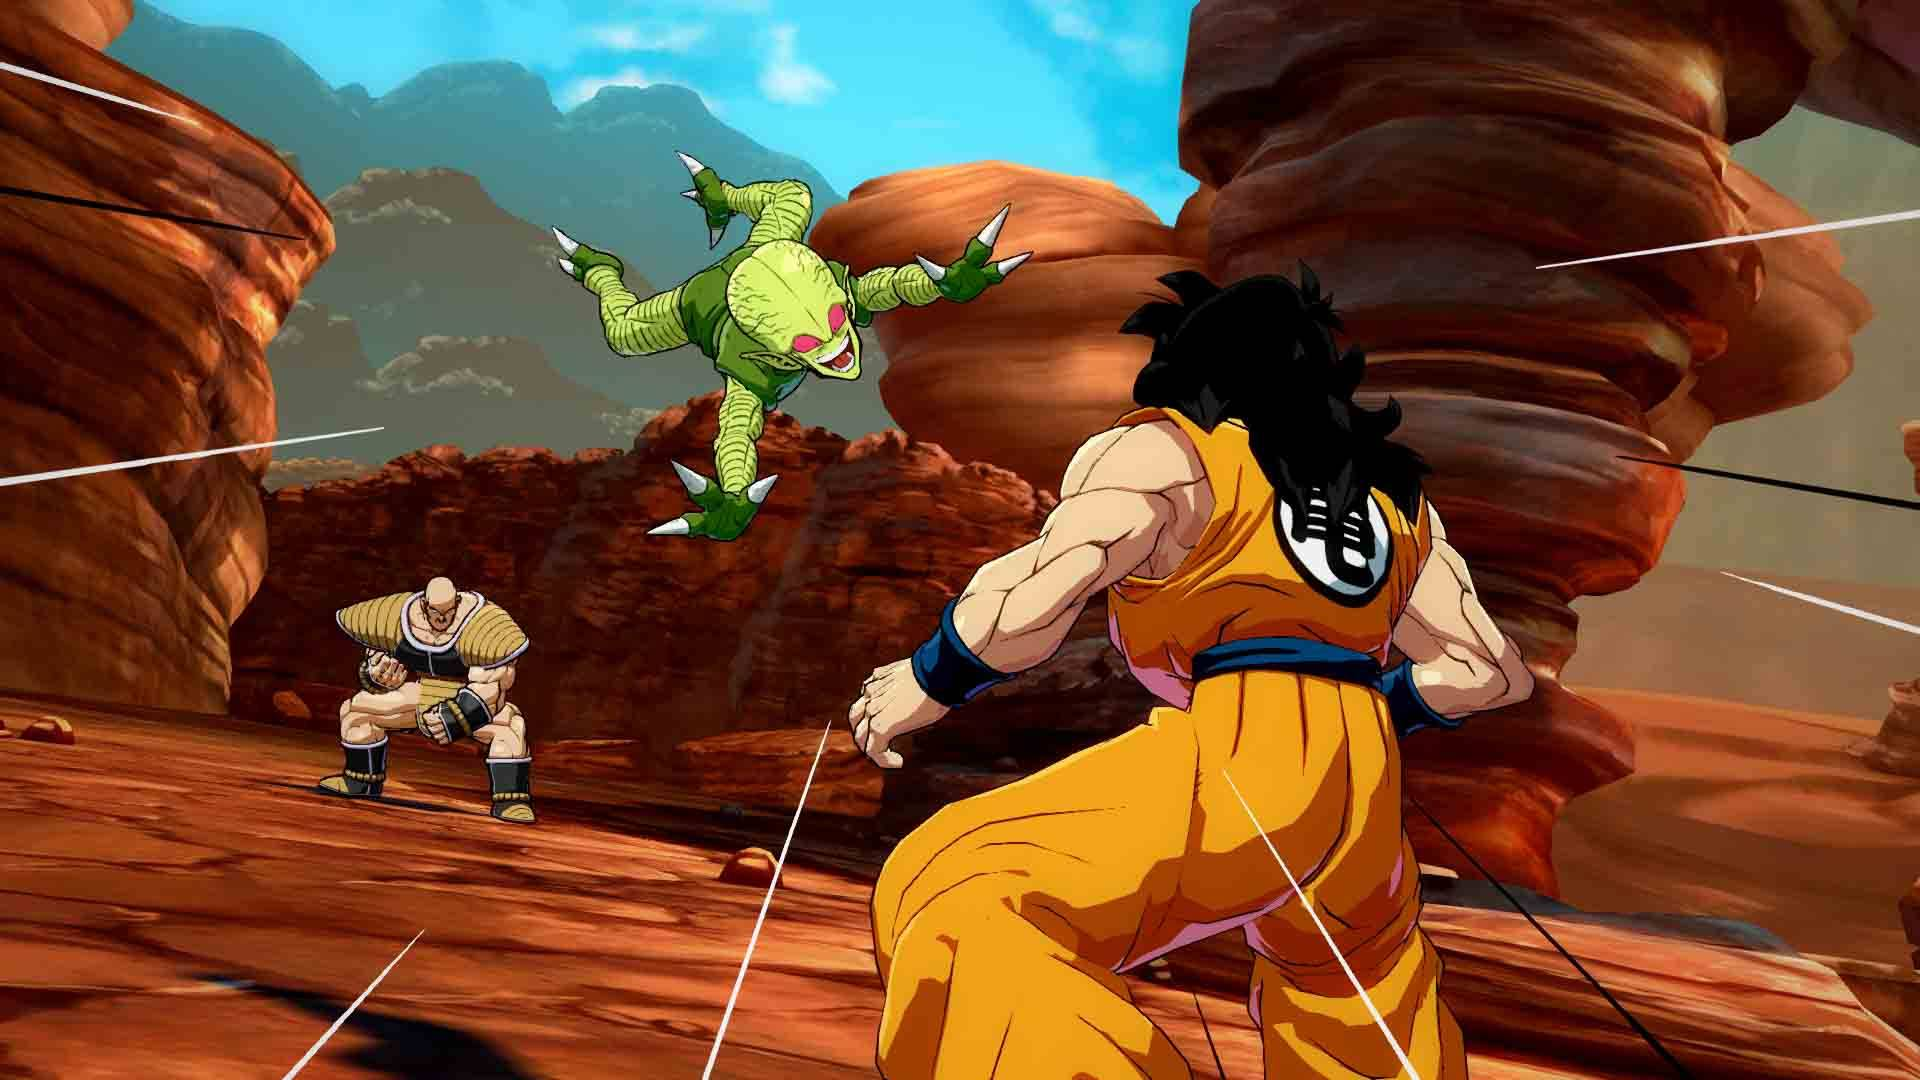 Saibamen_self-destructs_and_kills_Yamcha_1_1513339115 Kopie